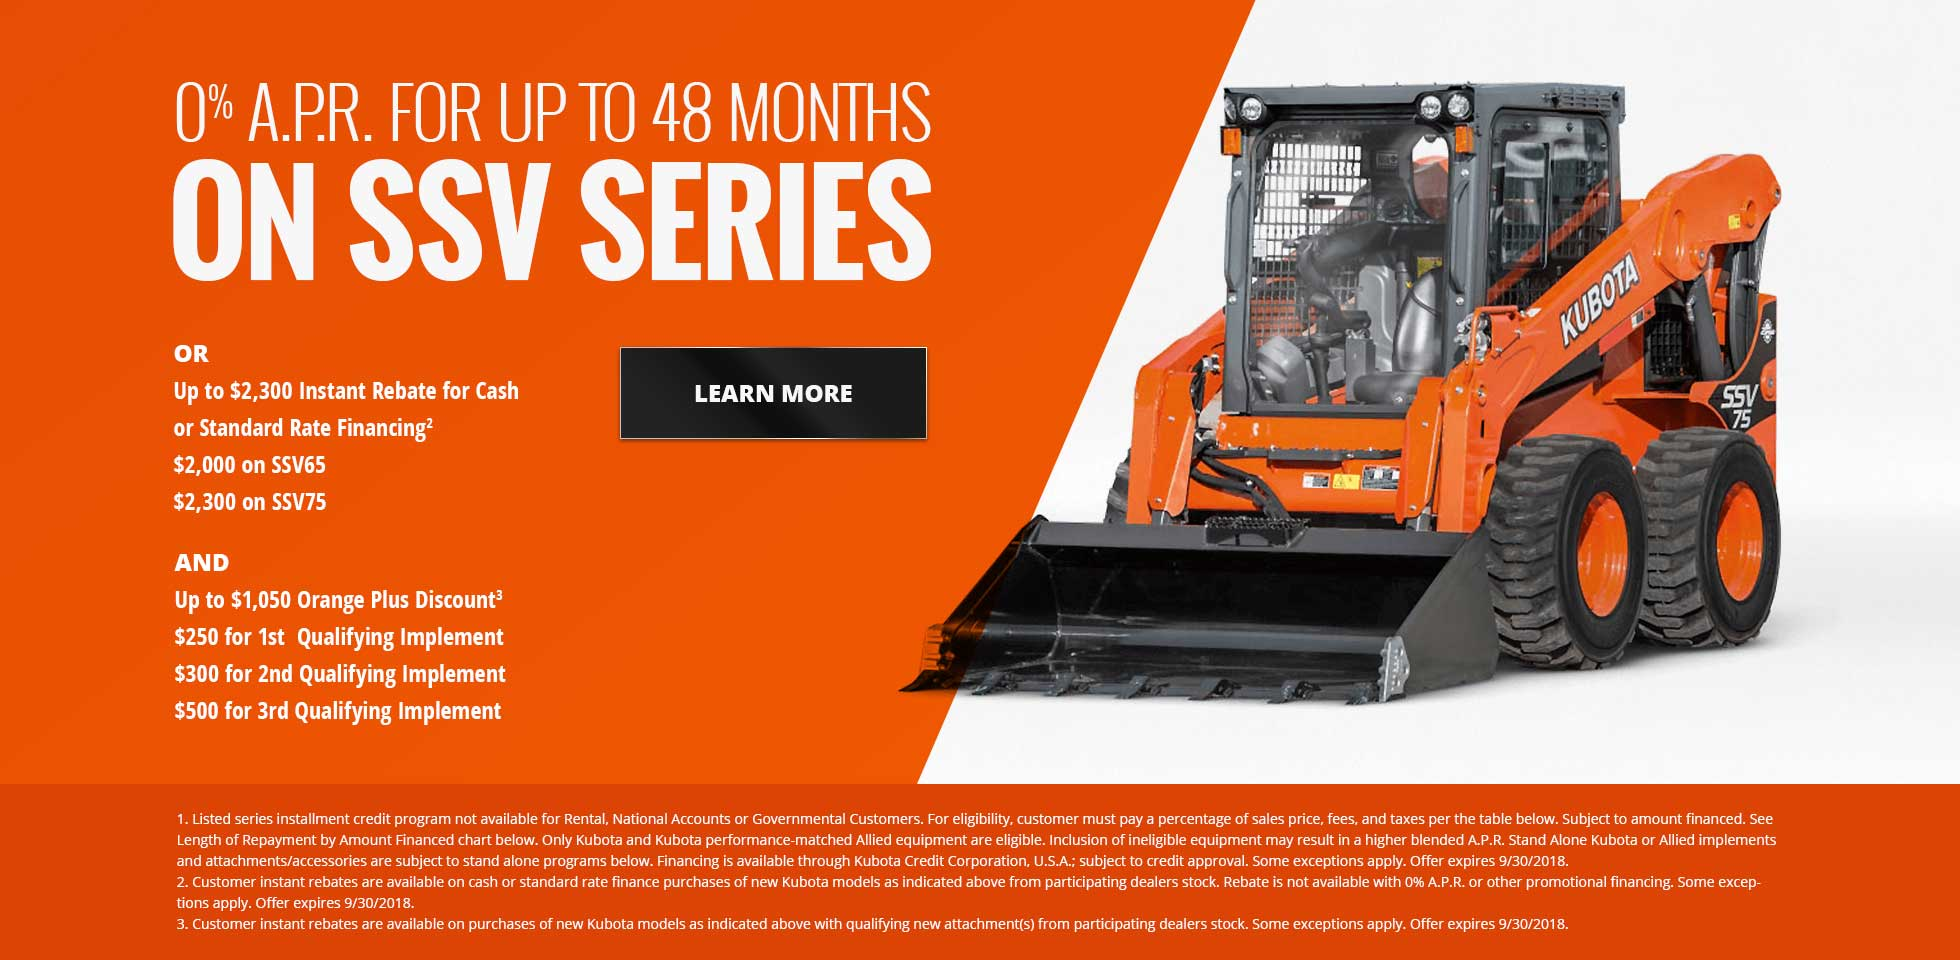 0% A.P.R. FOR UP TO 48 MONTHS ON SSV SERIES